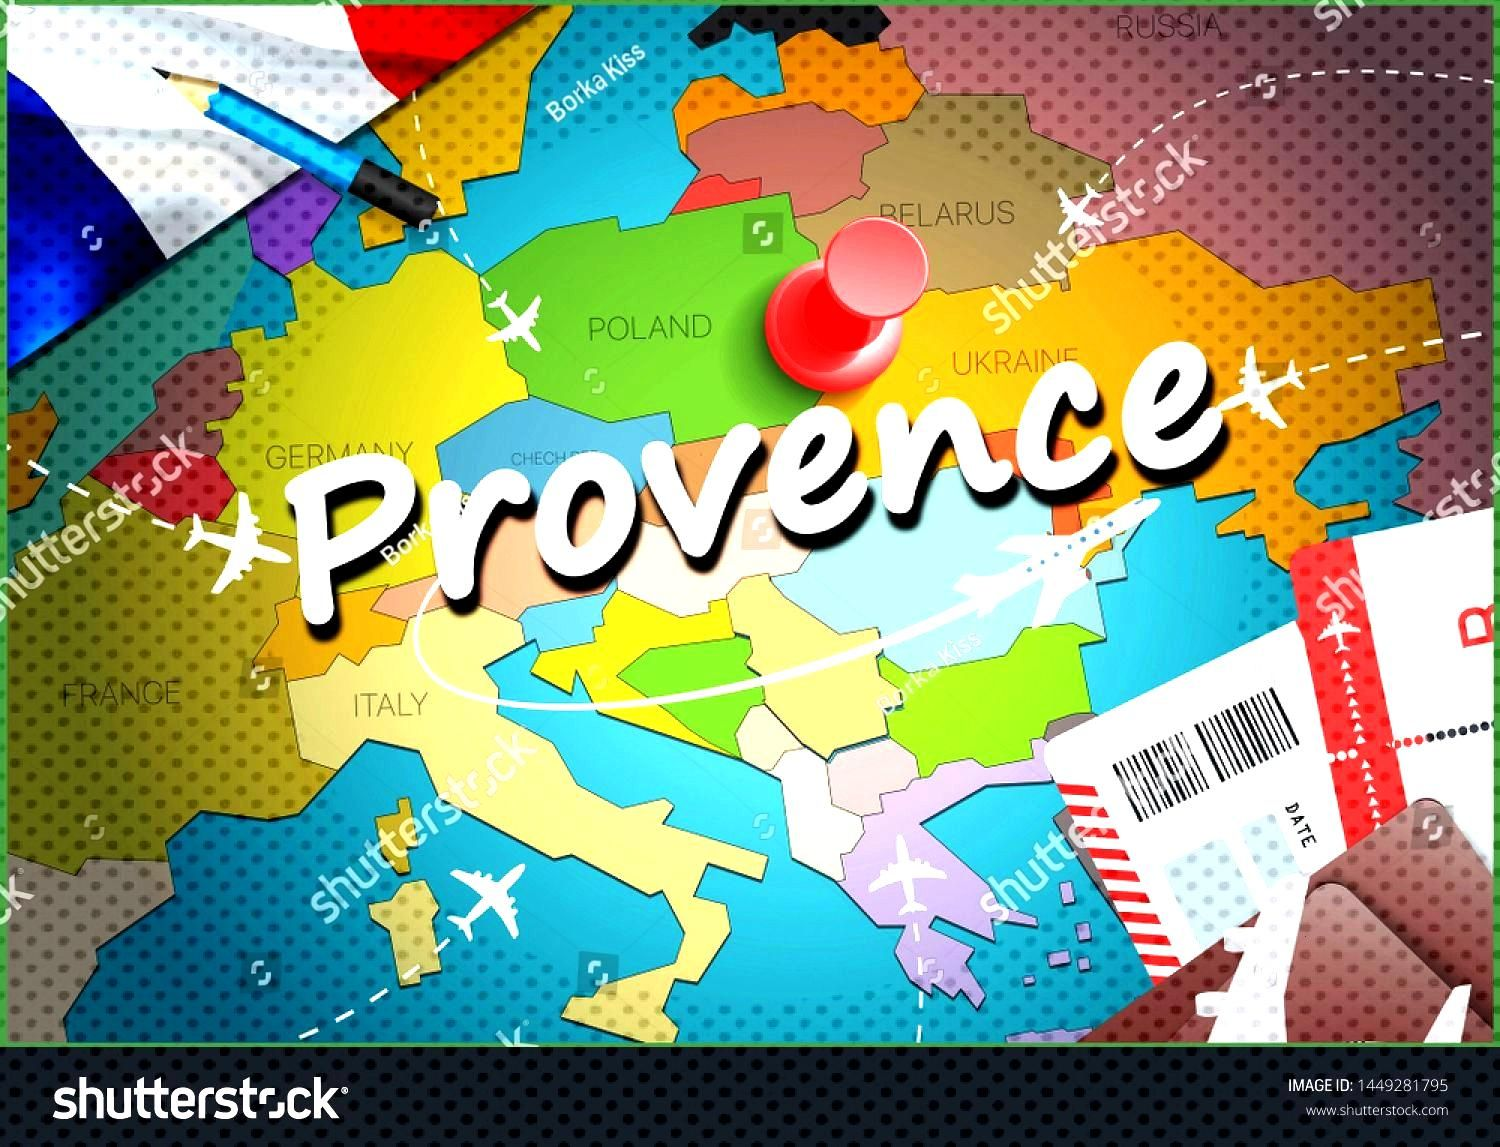 Provence city travel and tourism destination concept. France flag and Provence city on map. France